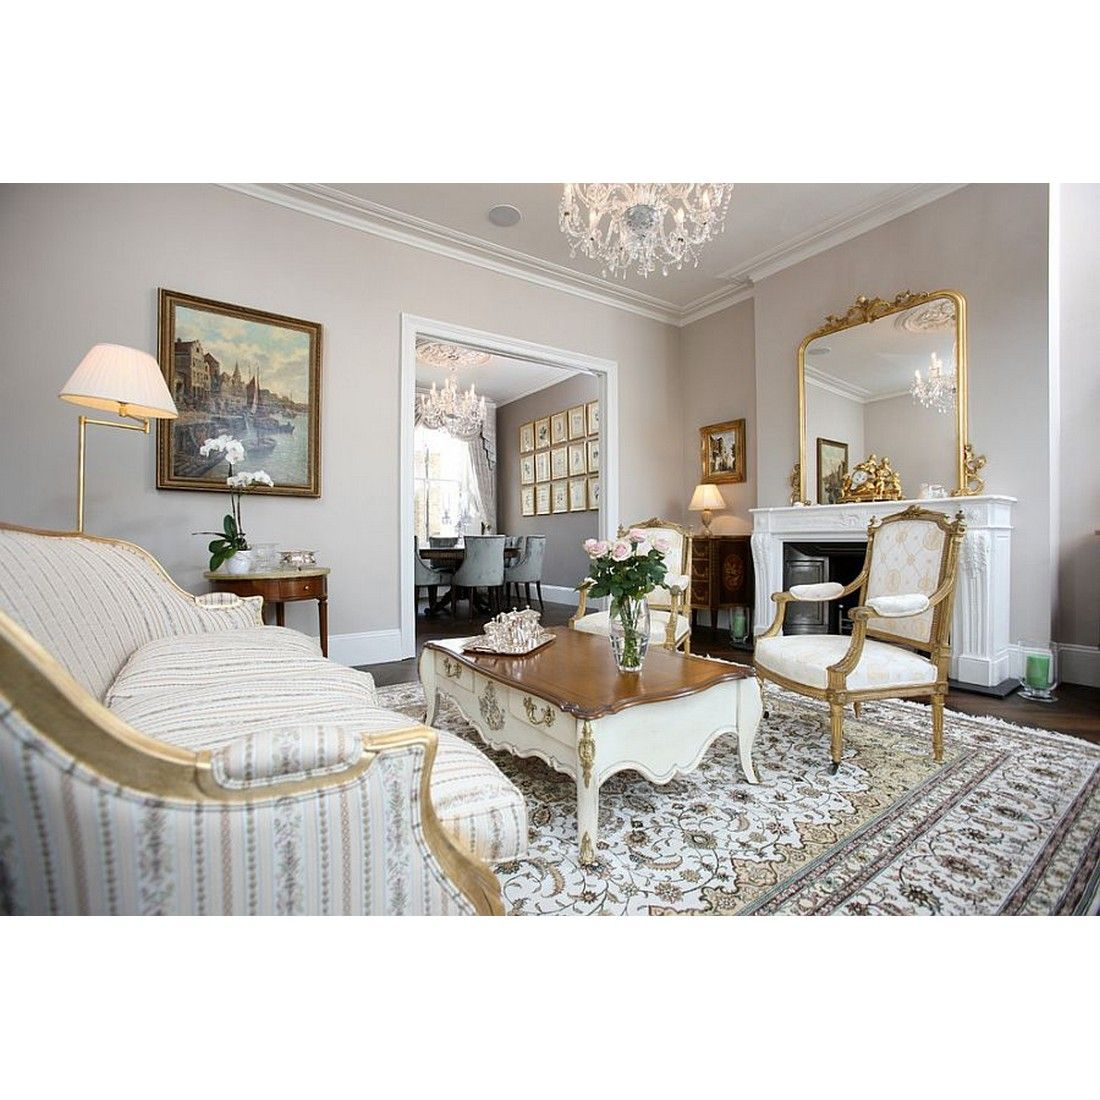 Wishing for classy white interior? Apply Victorian style ...